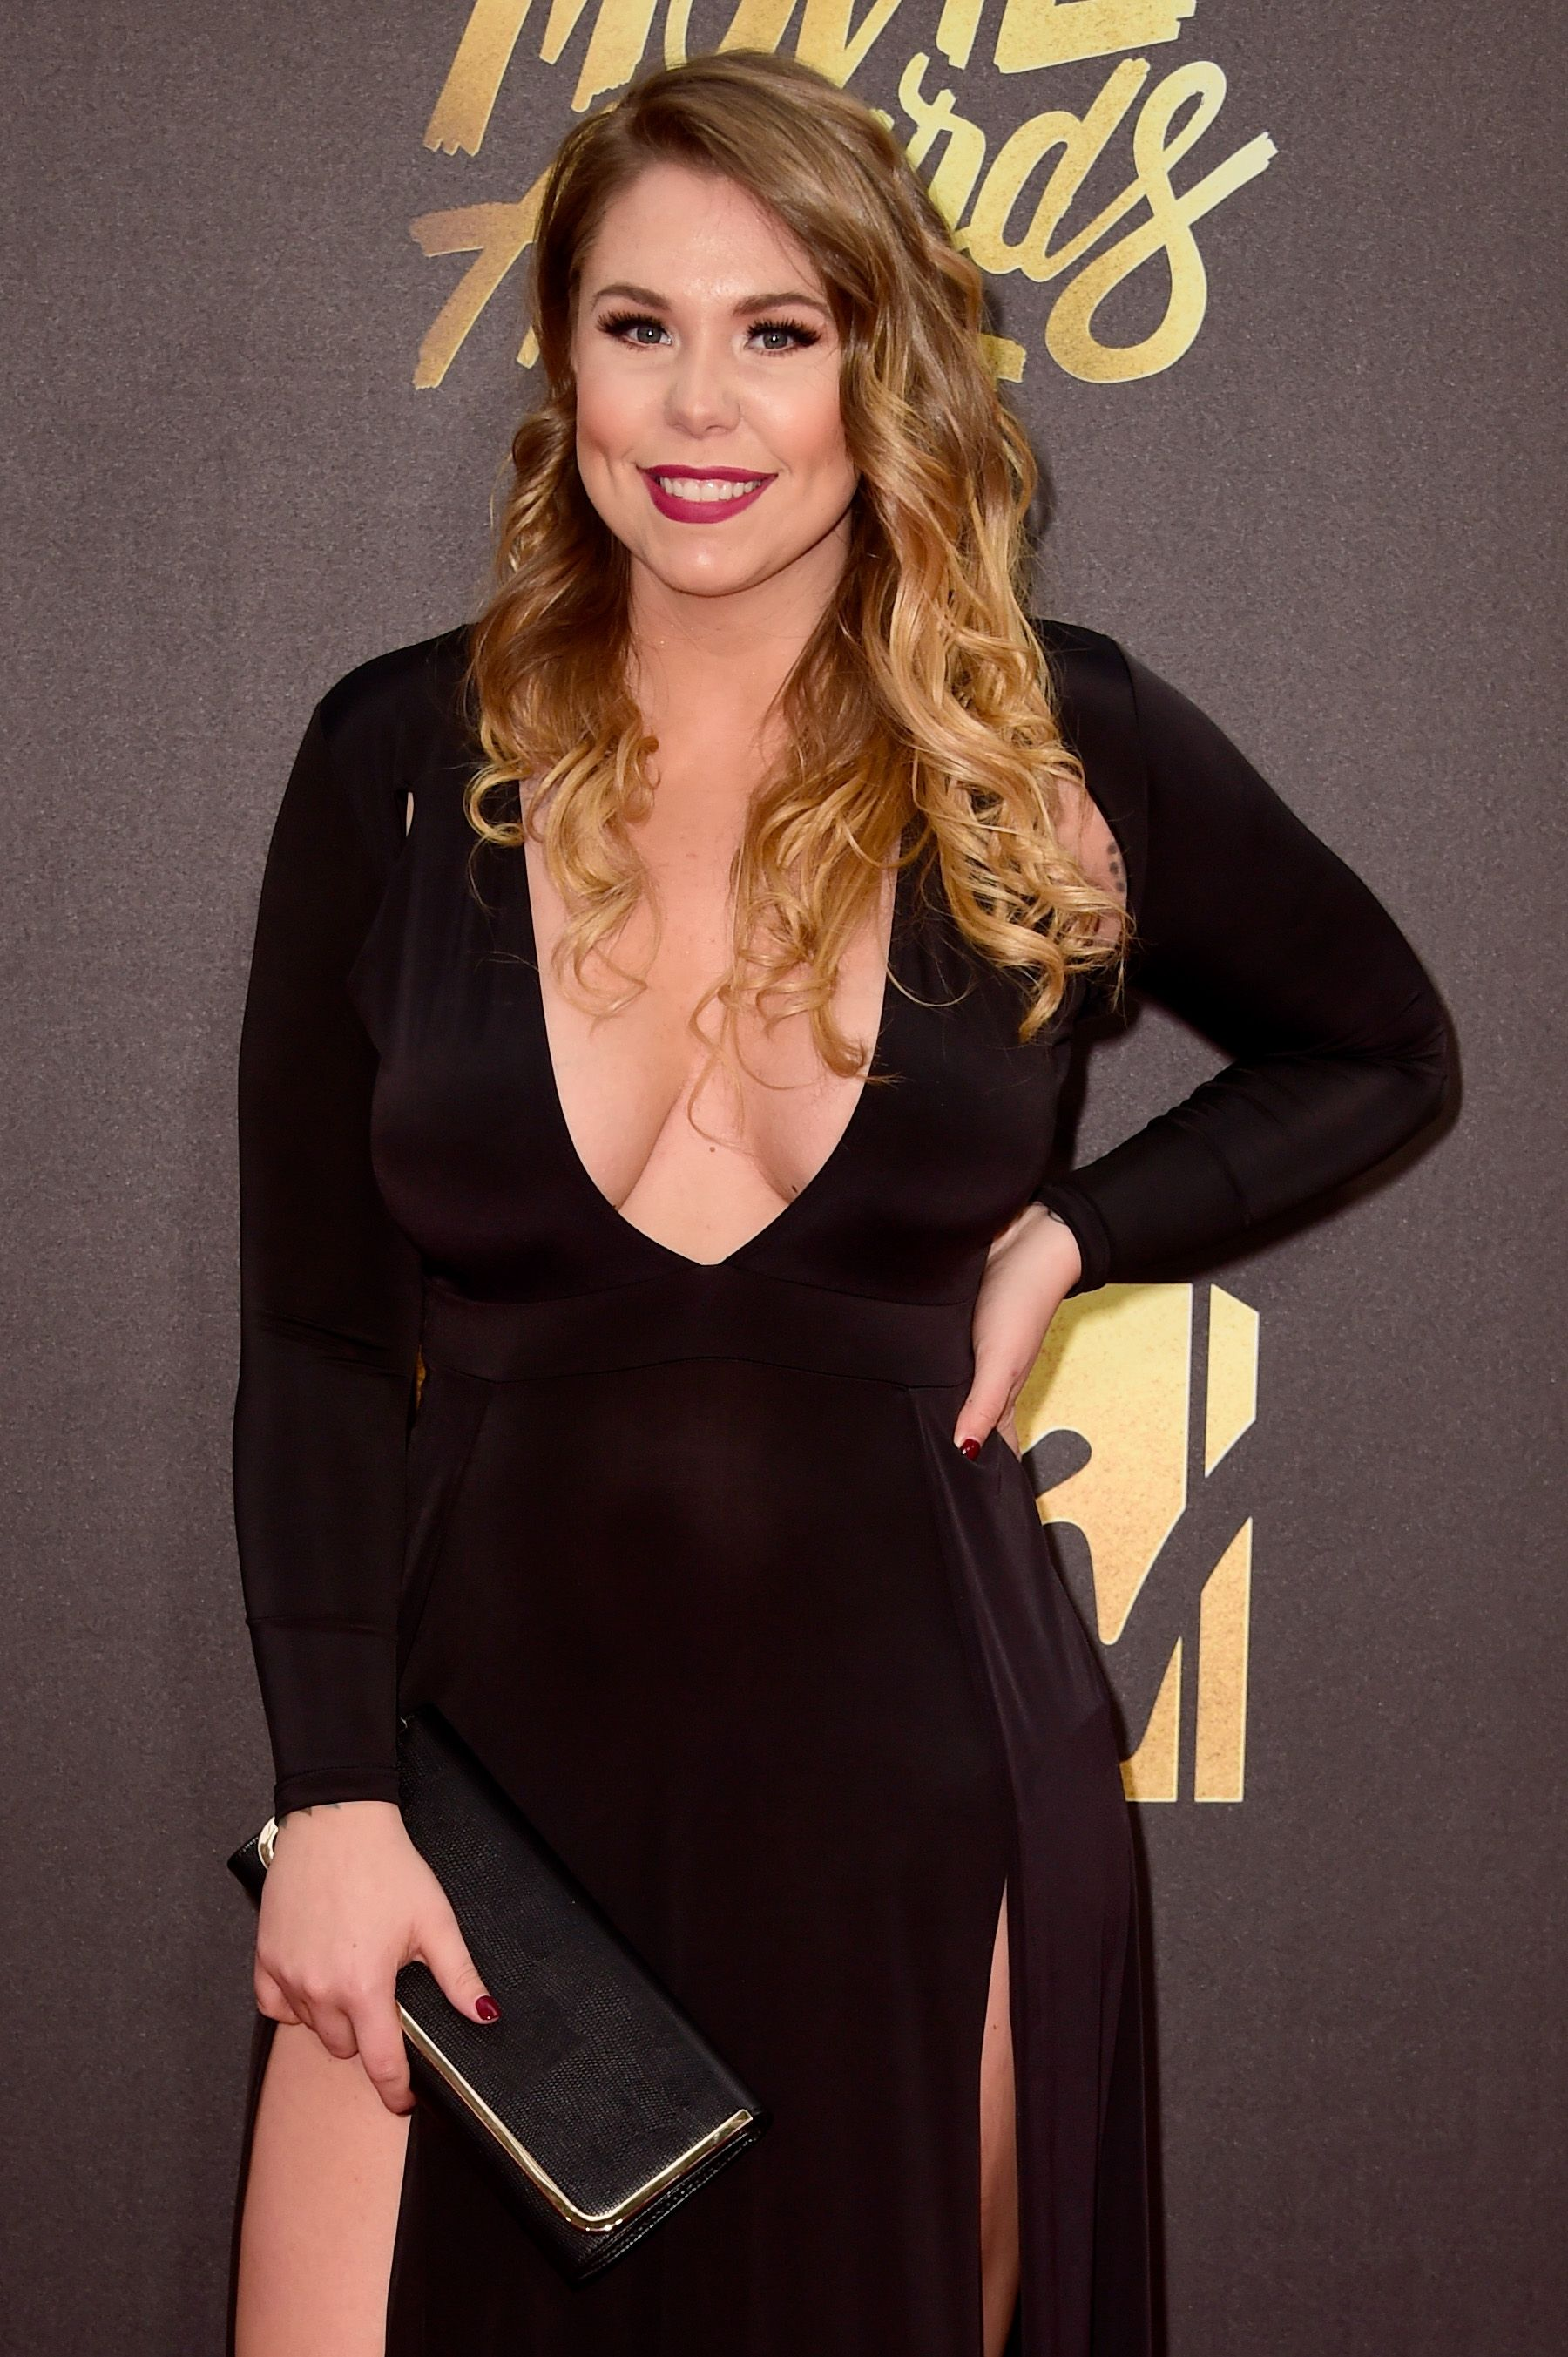 Kailyn Lowry Gives Birth to Third Child